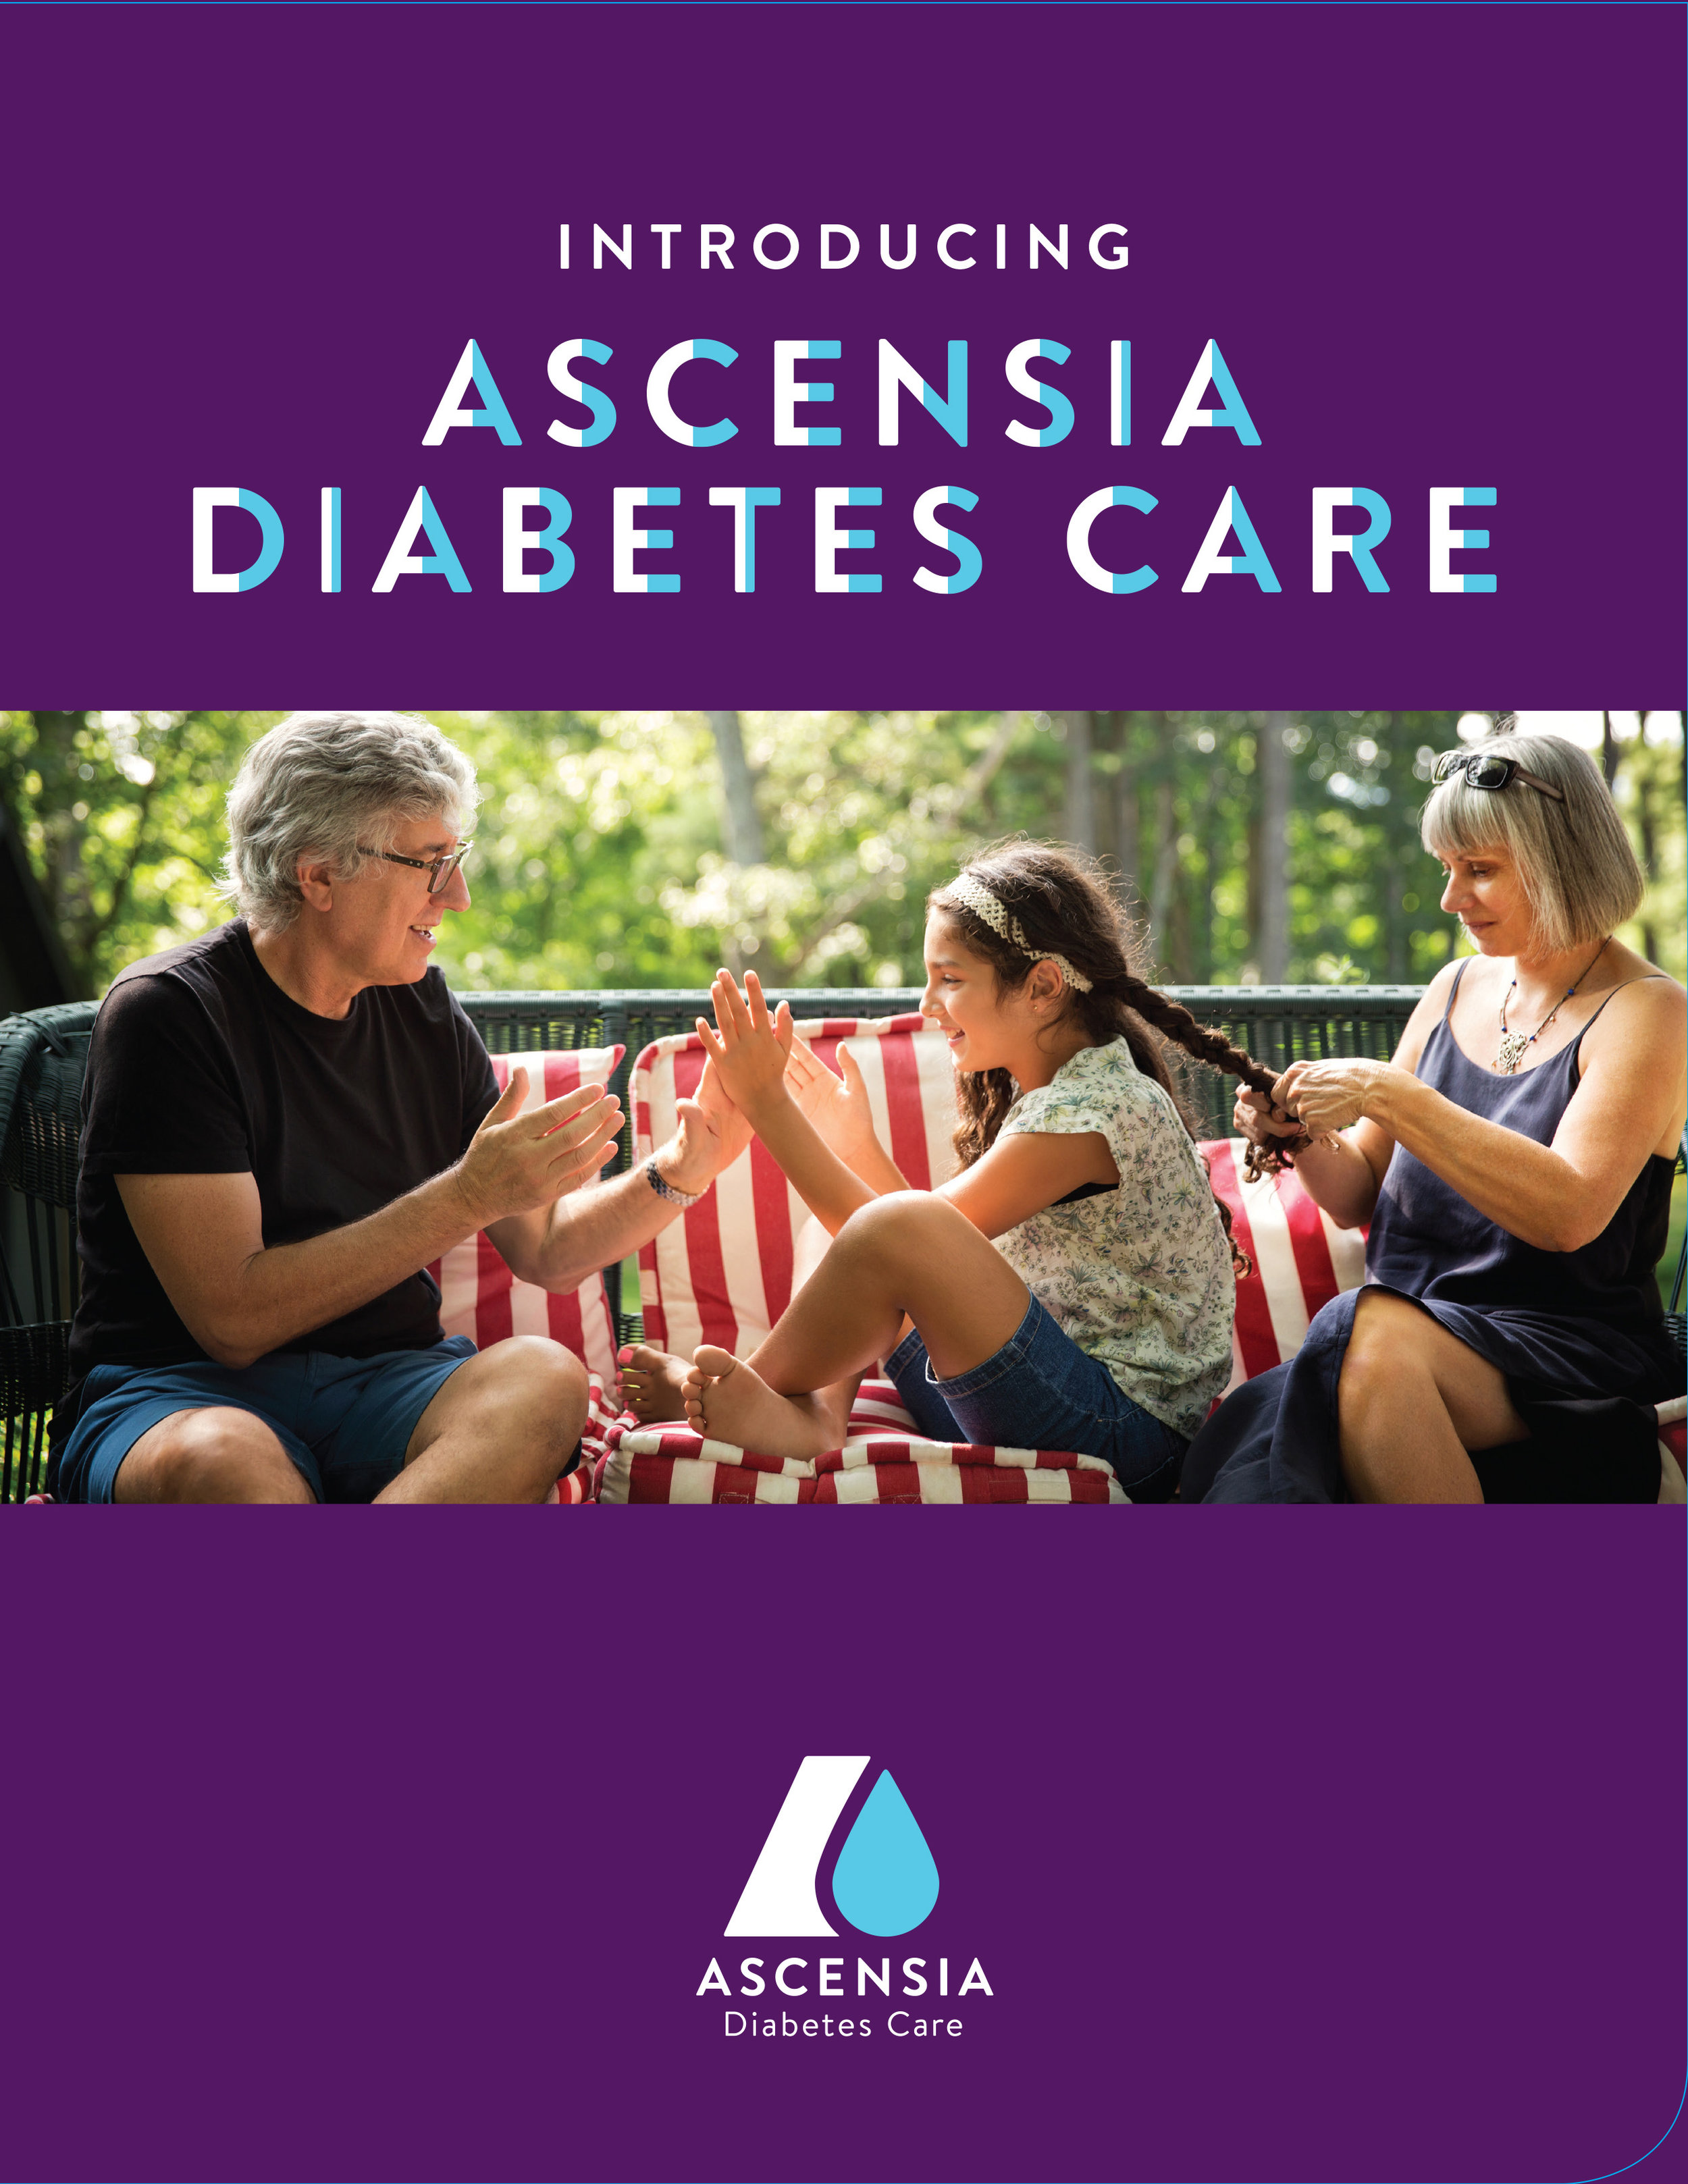 Ascensia Diabetes Care Corporate Information